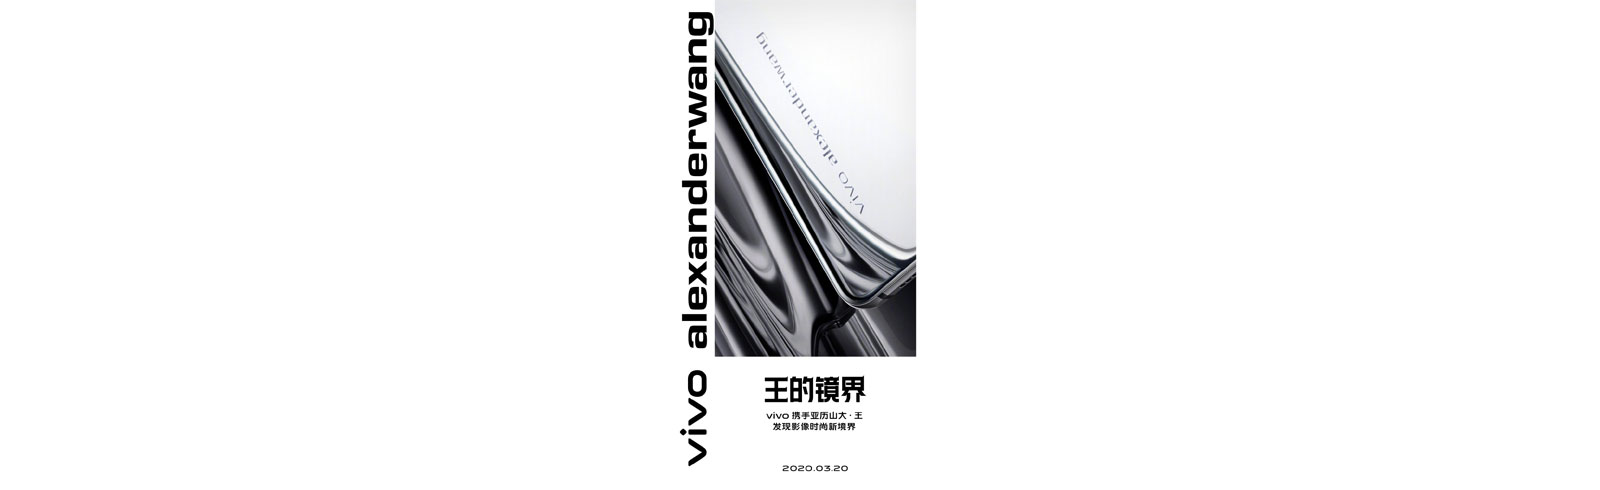 Vivo will introduce the Vivo X30 Alexander Wang limited edition on March 20